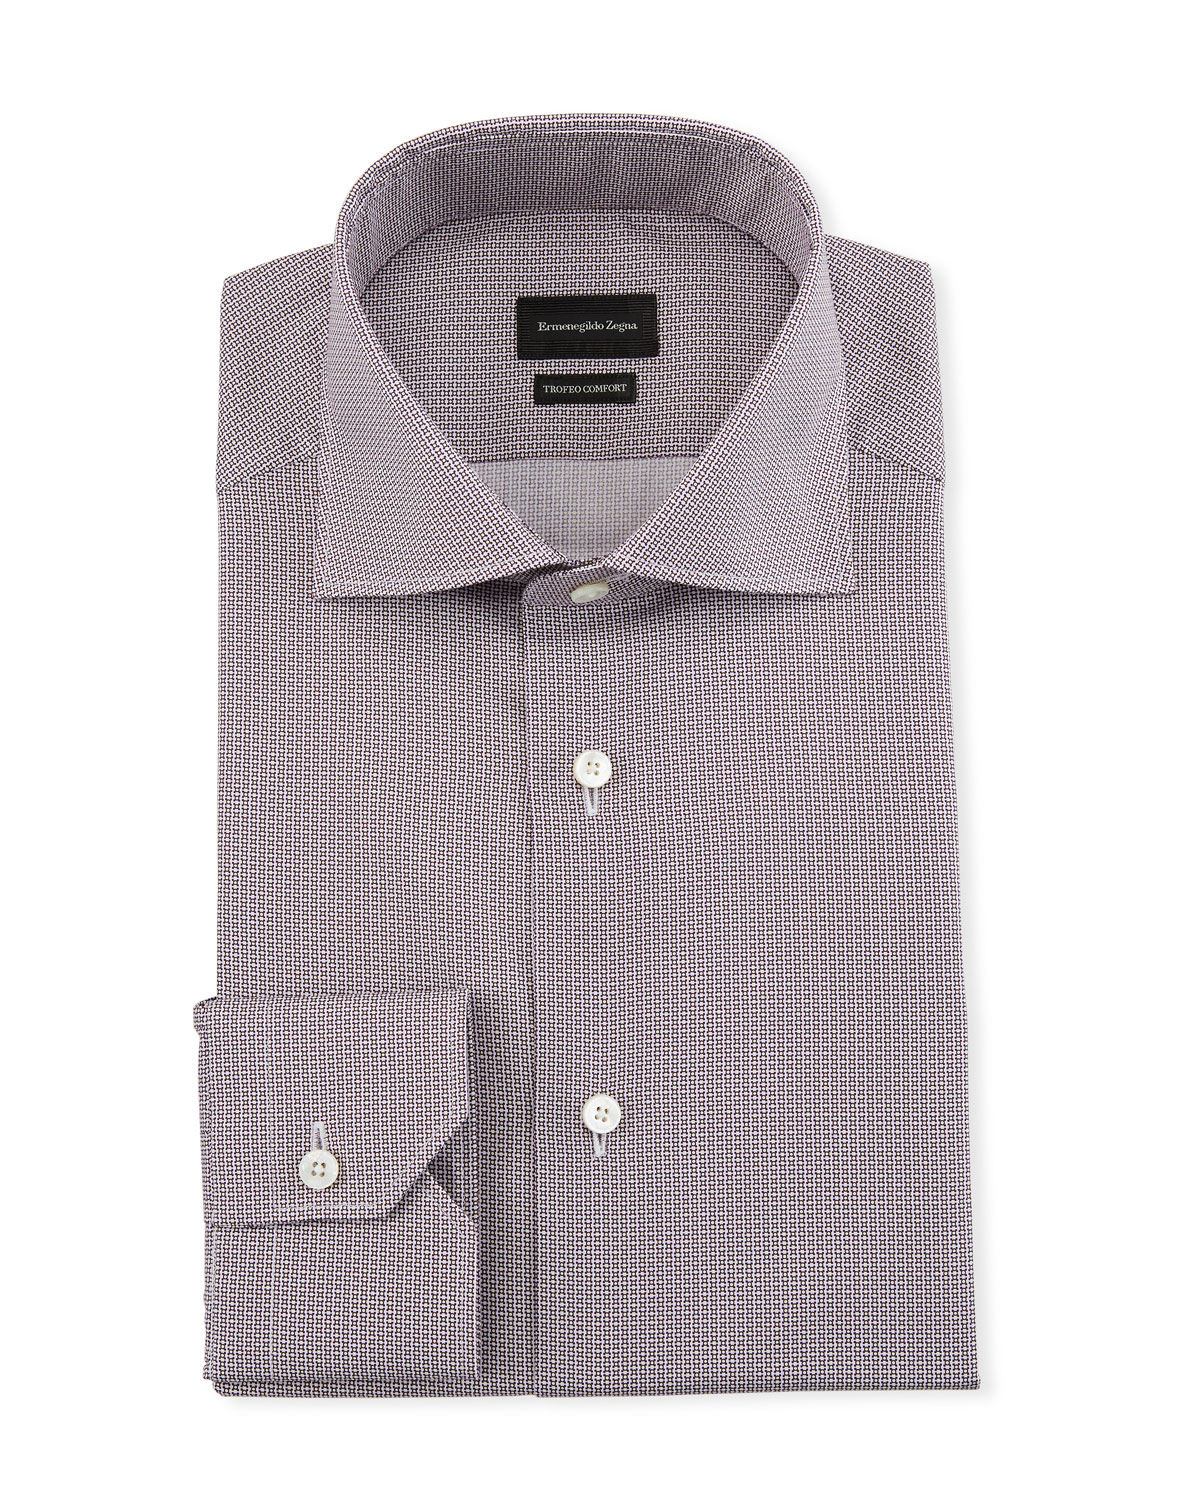 Ermenegildo Zegna Men's Trofeo Comfort Micro-Print Dress Shirt